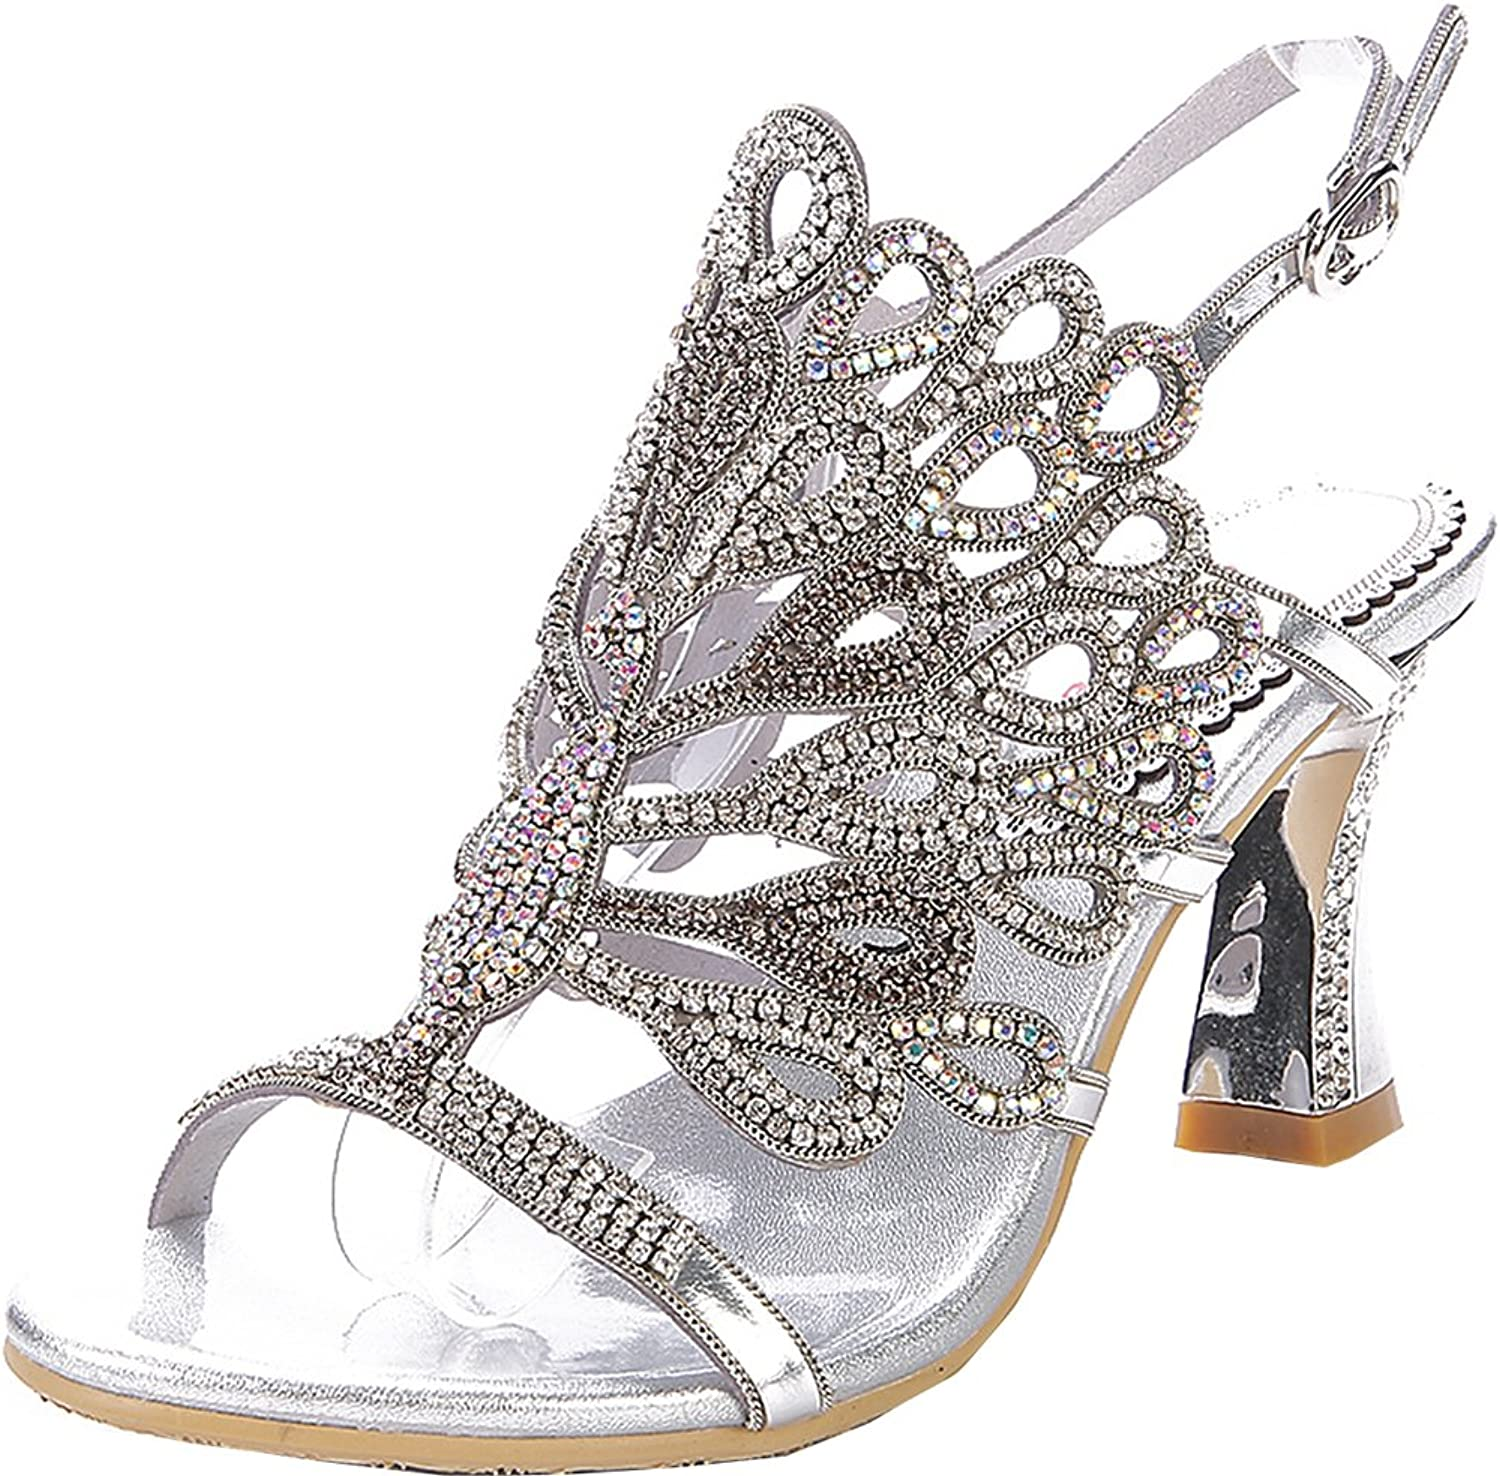 Abby Womens Sexy Unique Wedding Bride Show Comfort Surprising Fashion Leather Mid Heel Sandals